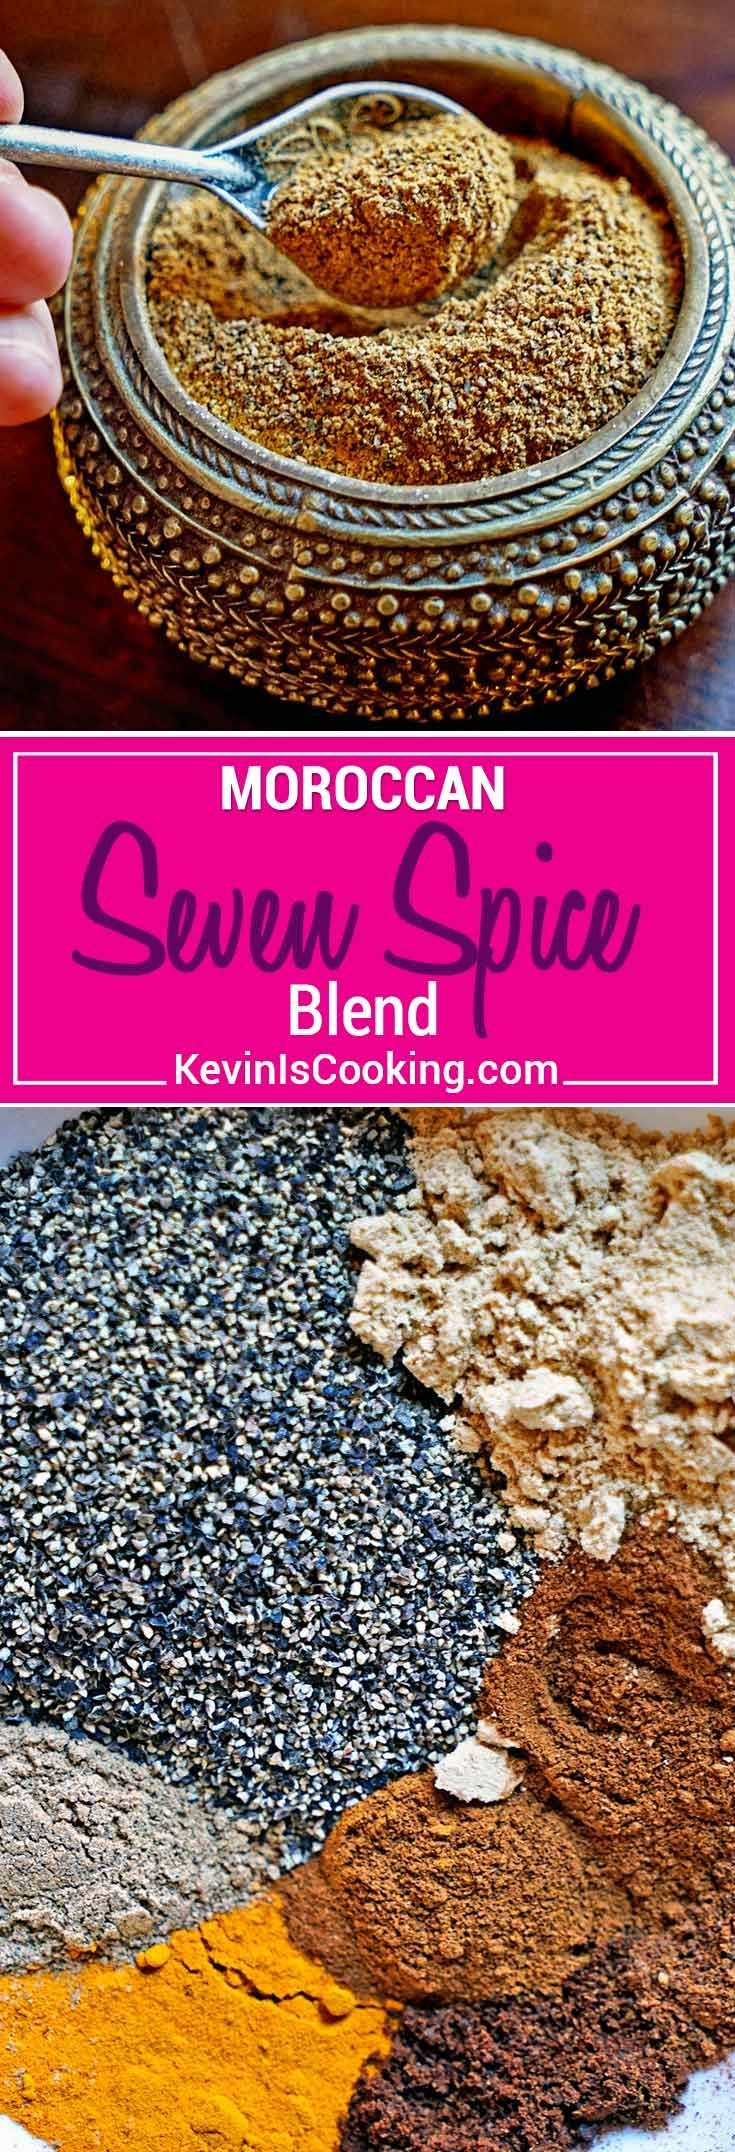 Moroccan Seven Spice Blend - a beautiful mixture of warm, ground spices that include black pepper, ginger, turmeric, cinnamon, cardamom, clove and nutmeg. An exotic and tasty blend for seasoning and dry rubs. via @keviniscooking